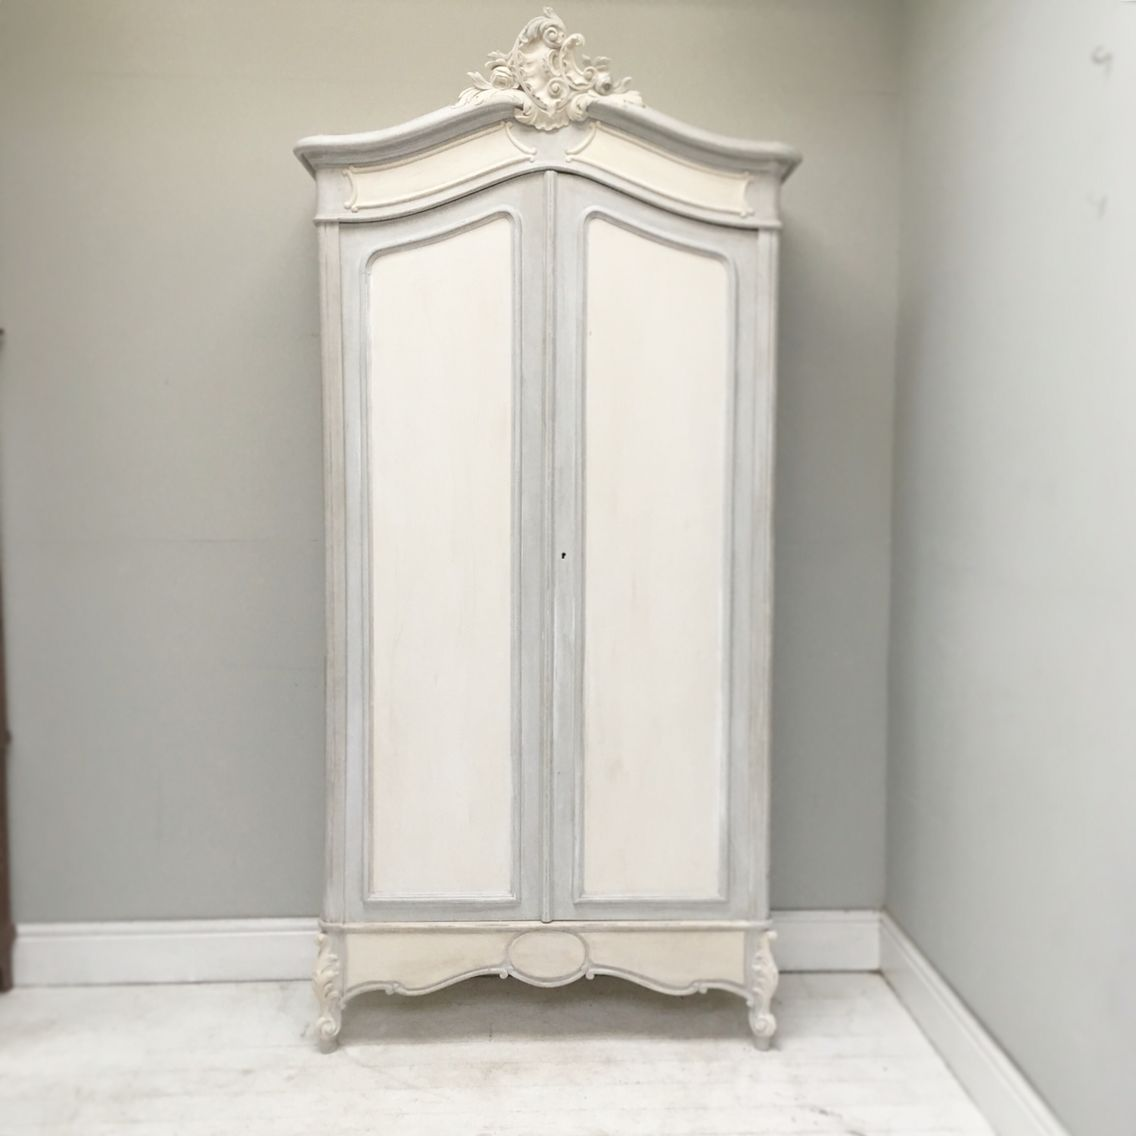 Beau French Armoires, Antique Furniture Sourced From France.